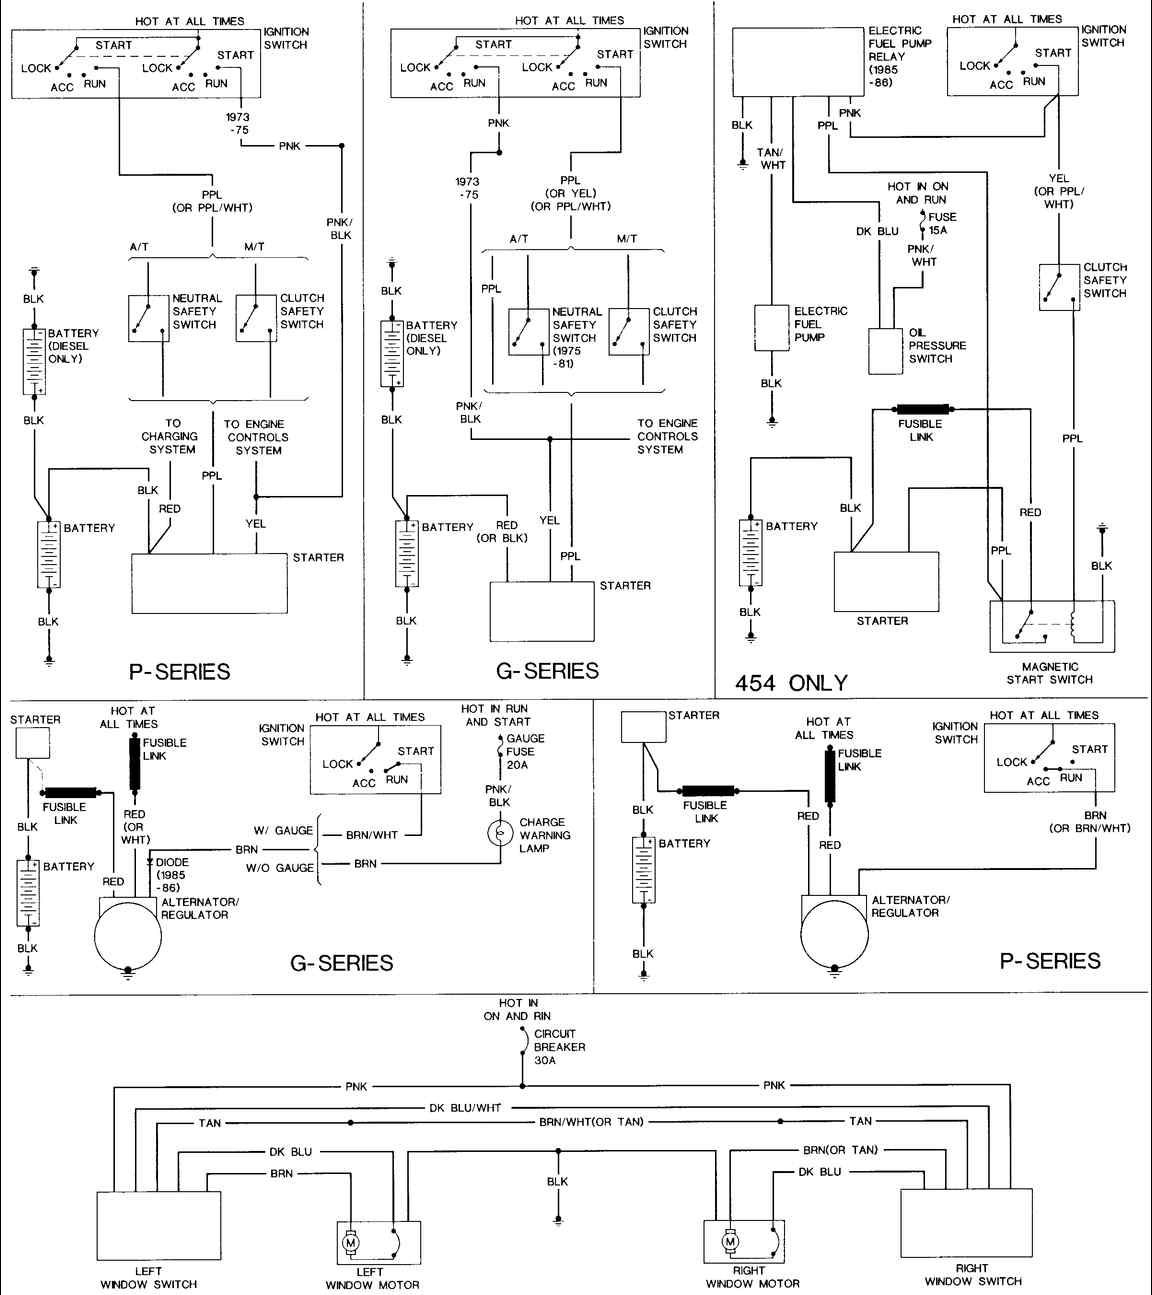 Chevy Silverado Fuse Box Diagram 1979